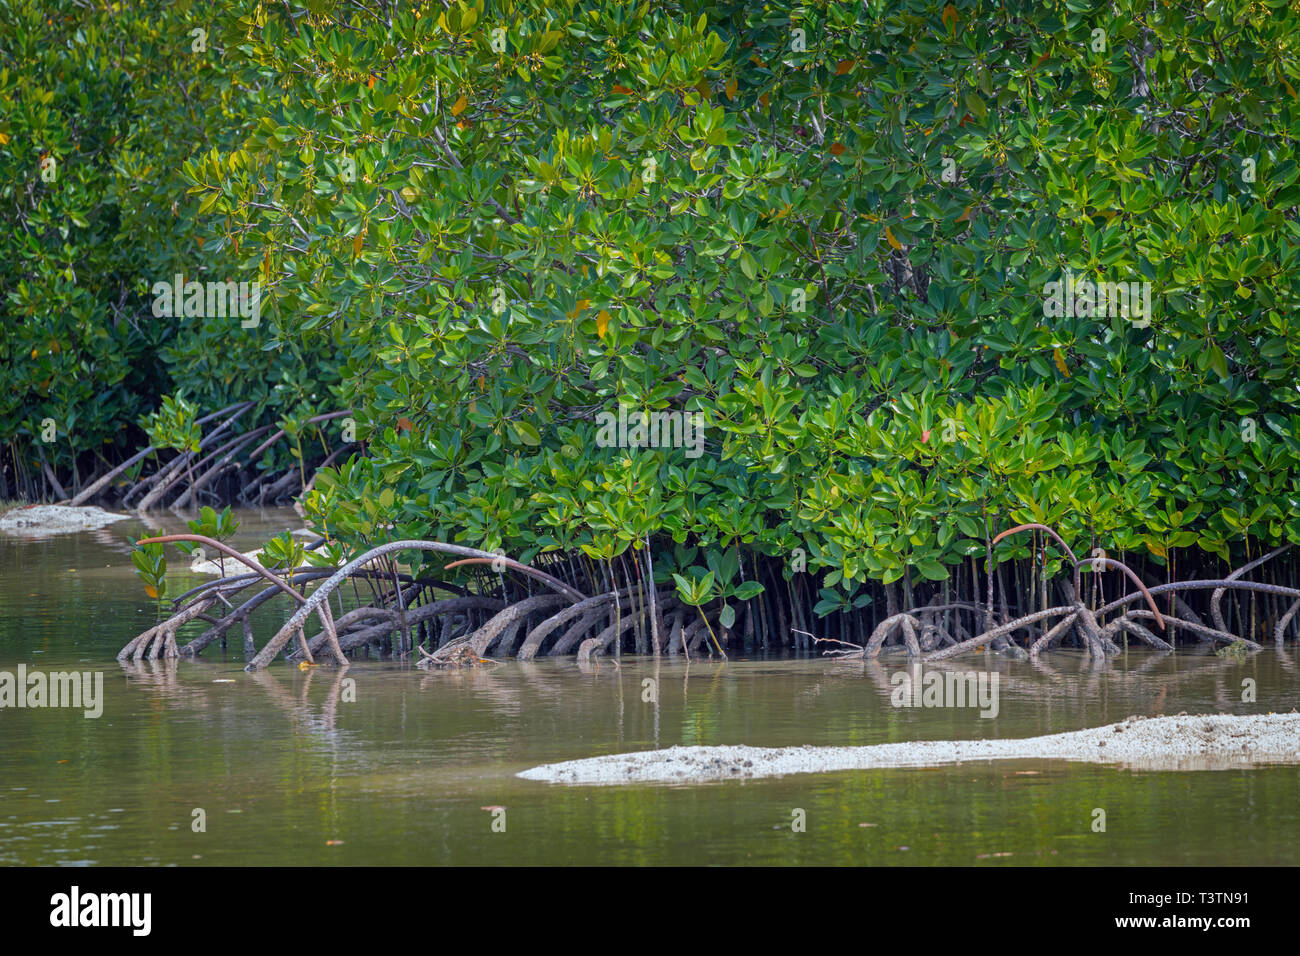 The Pointe D'Esny Wetland near Mahebourg, Mauritius, Mascarene Islands.  The wetlands have been declared a Ramsar Site of International Importance. Stock Photo